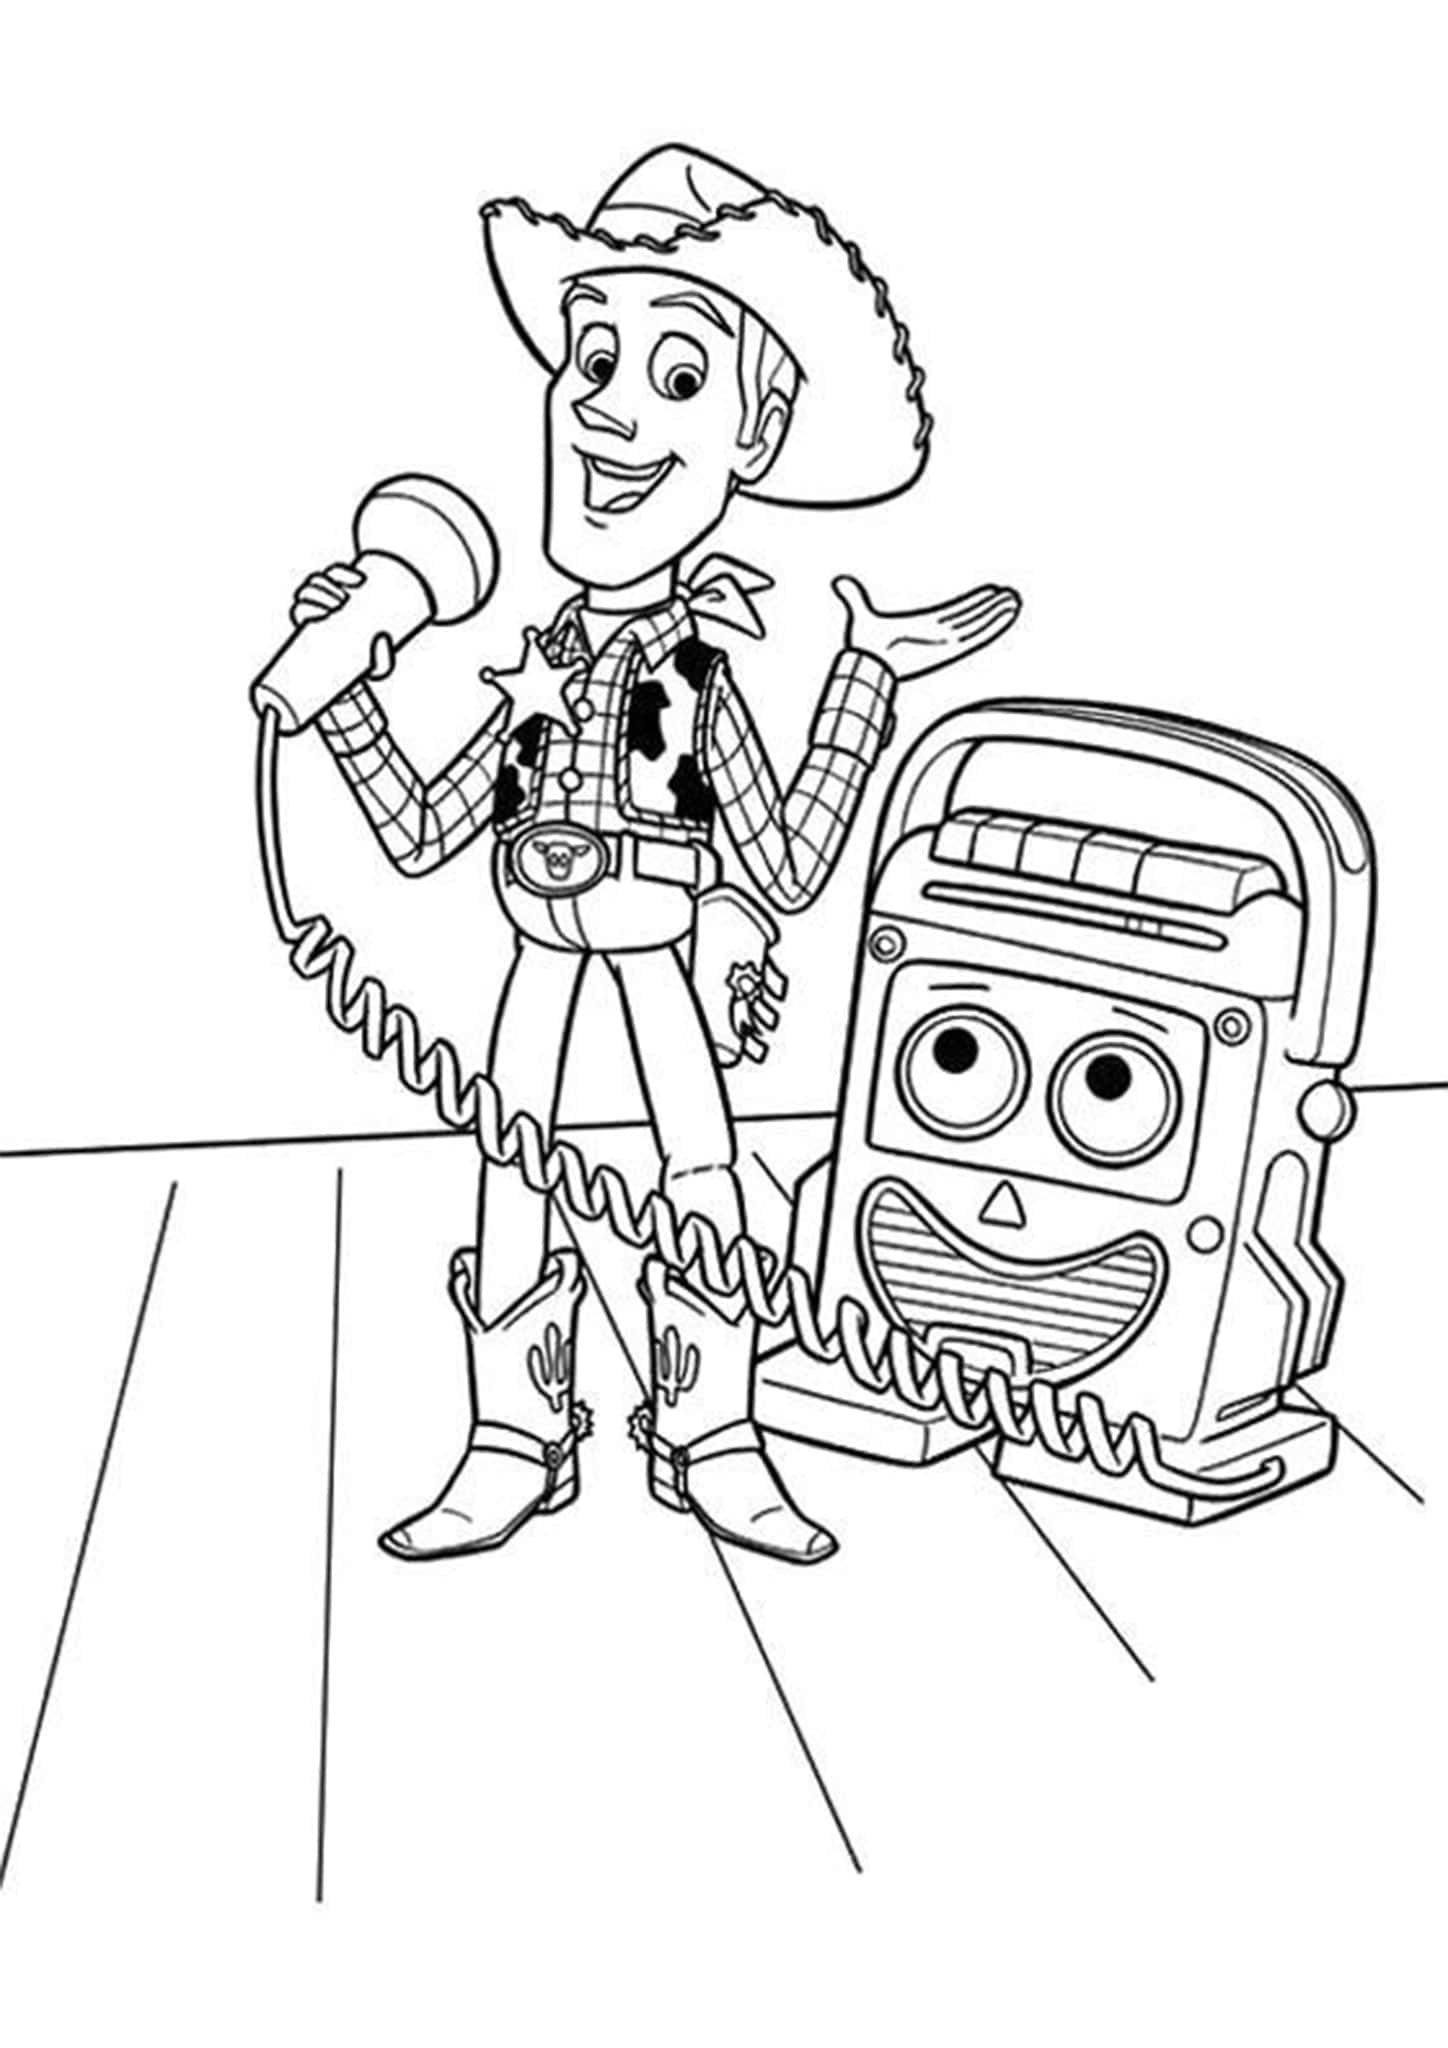 Free Easy To Print Toy Story Coloring Pages Toy Story Coloring Pages Cartoon Coloring Pages Coloring Books